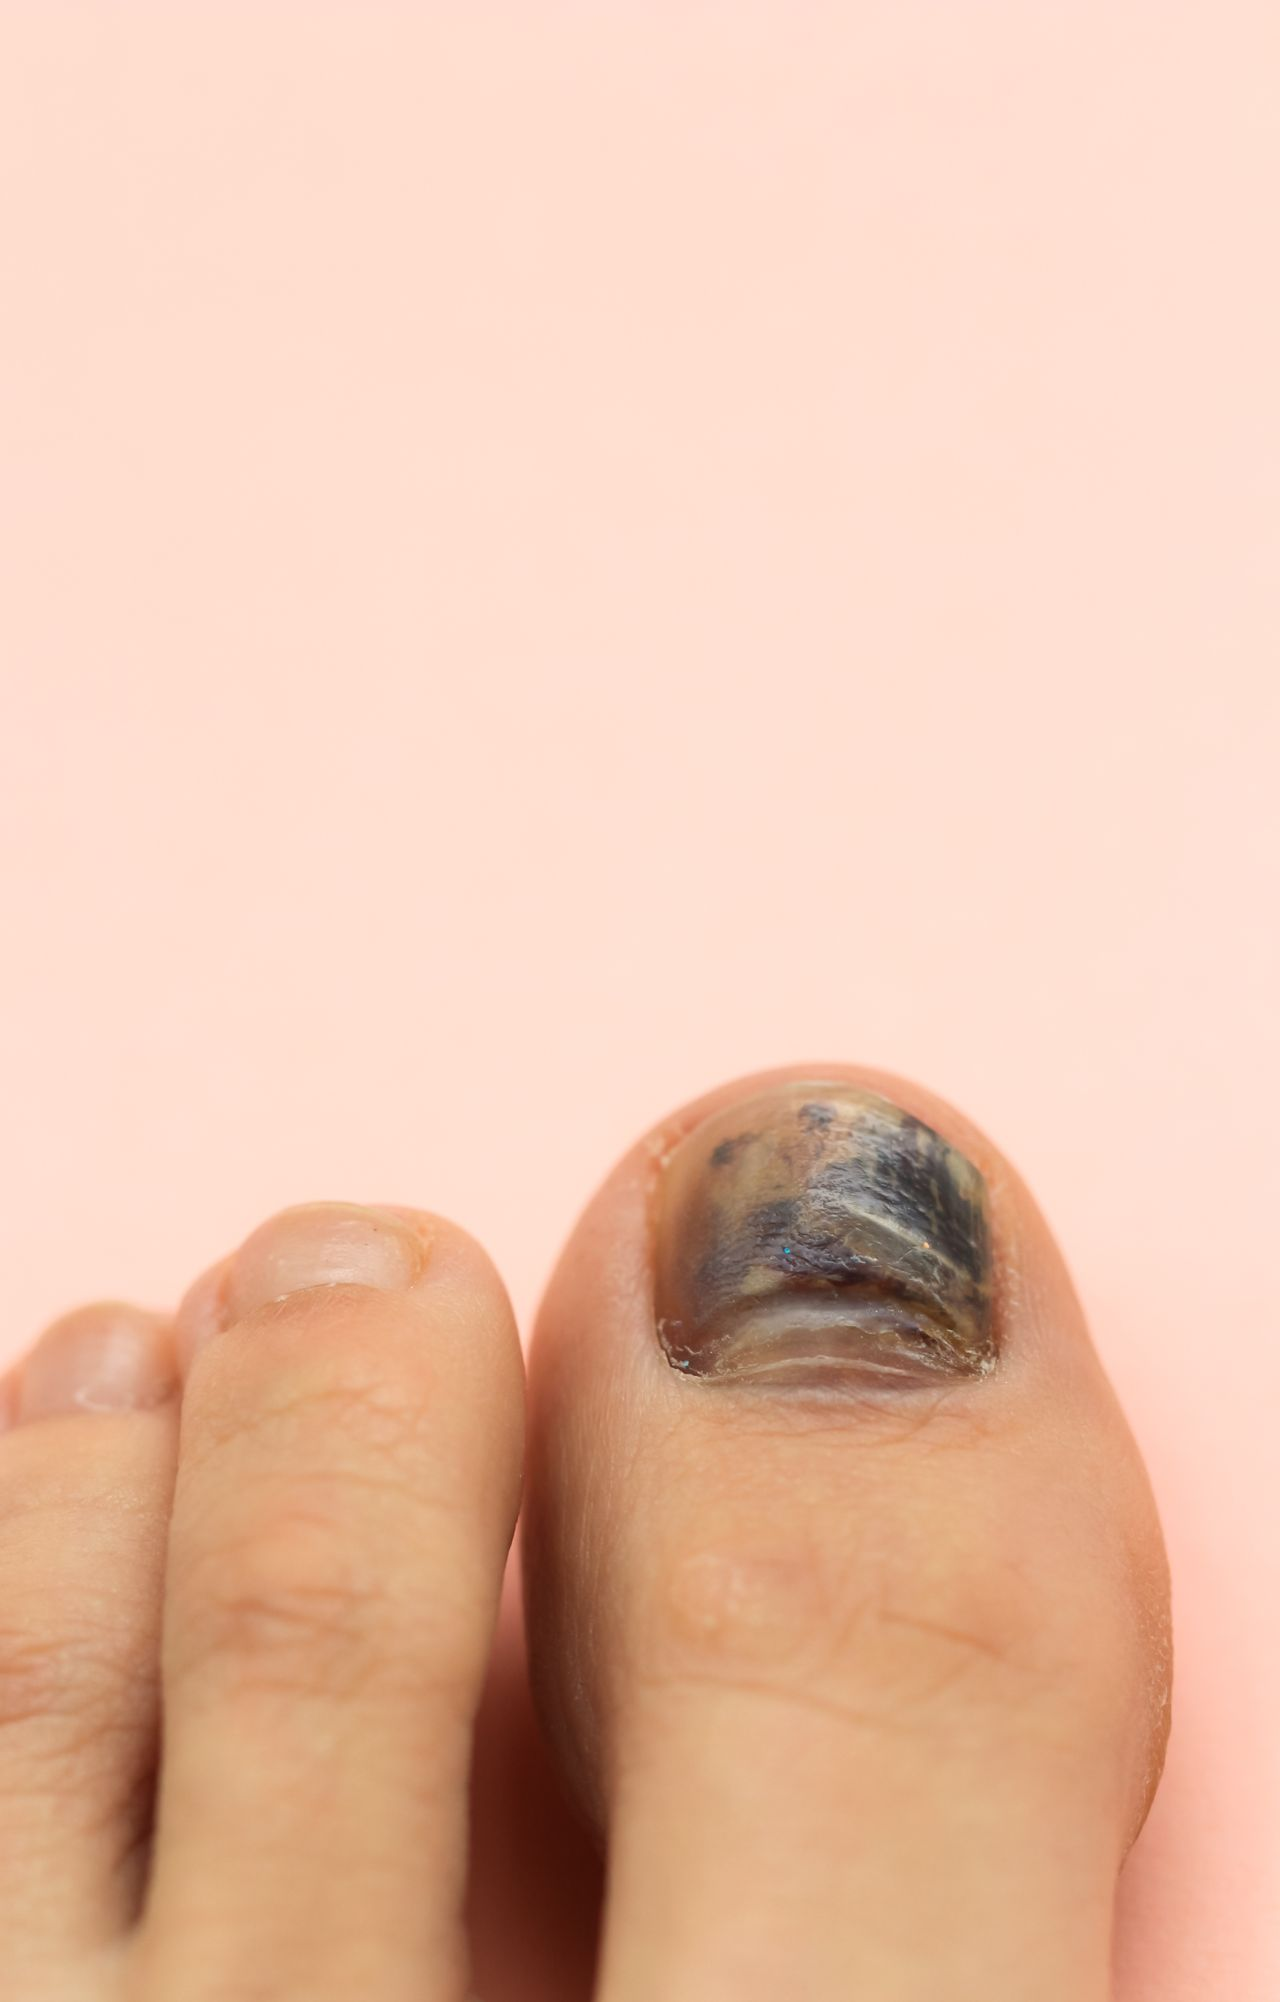 Should I be worried about a dark spot under my toenail? | Prairie ...